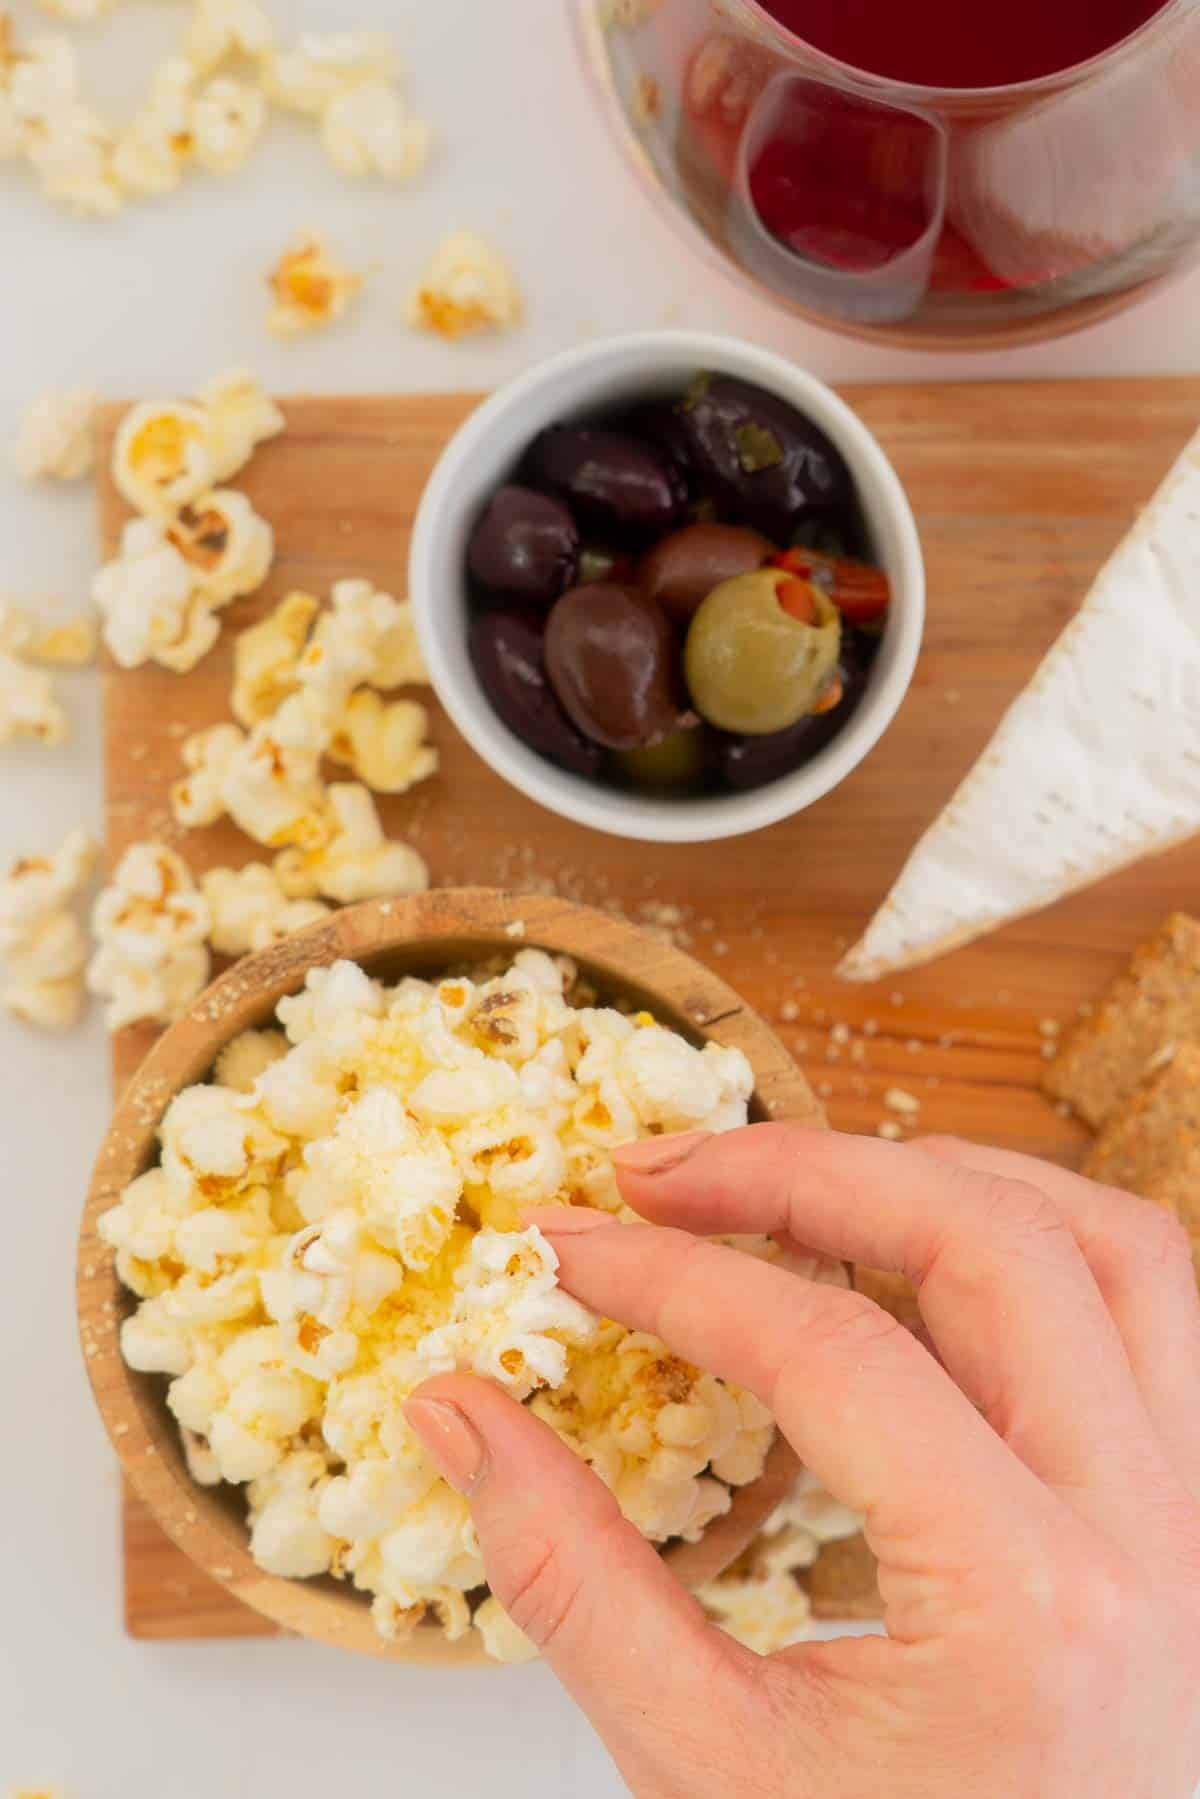 A female hand reaching for popcorn from an antipasto platter